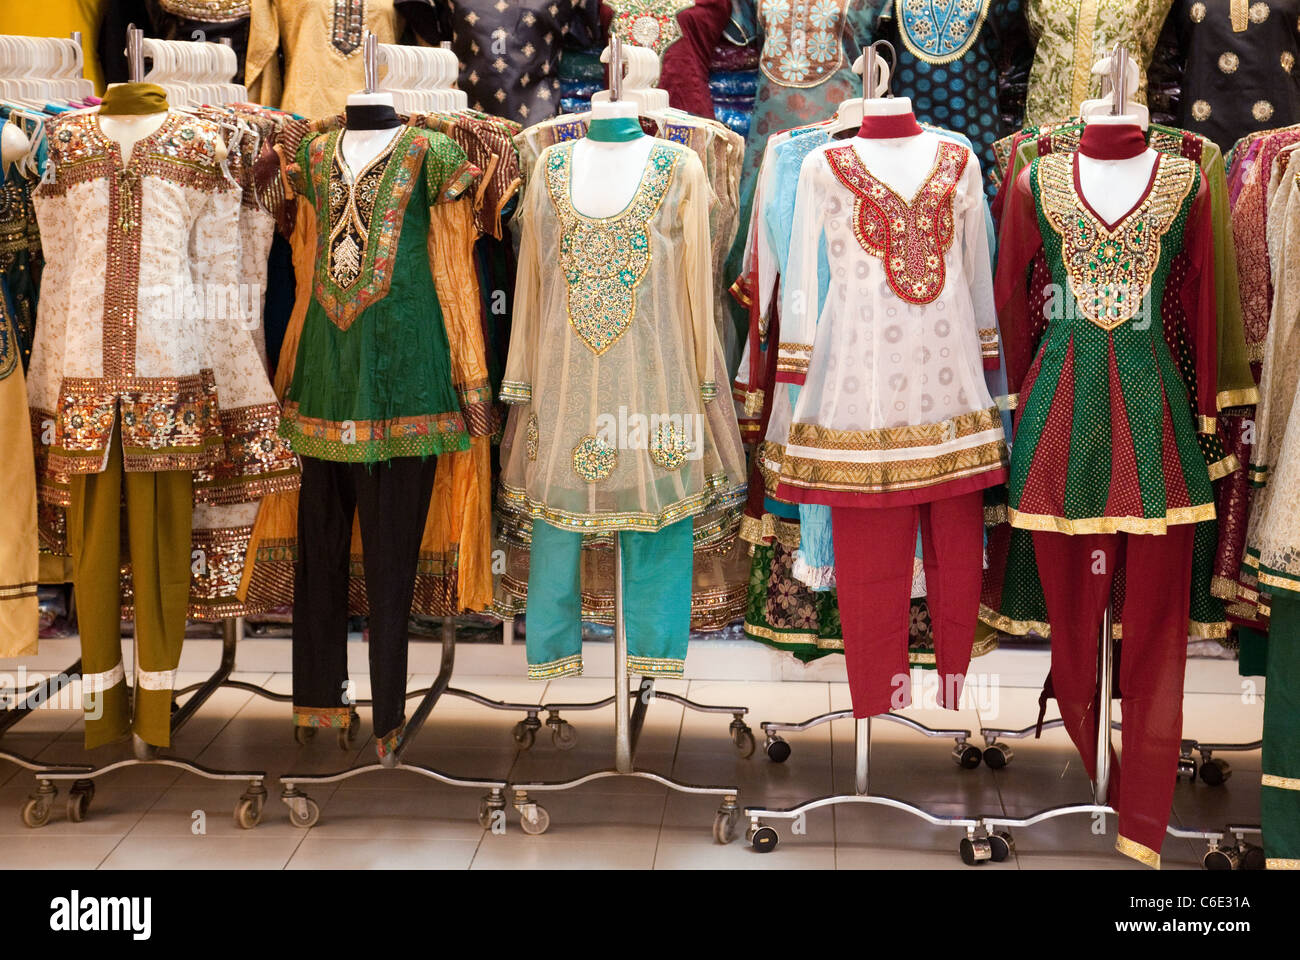 Colourful Indian clothes for sale in the Tekka Centre market, Little ...